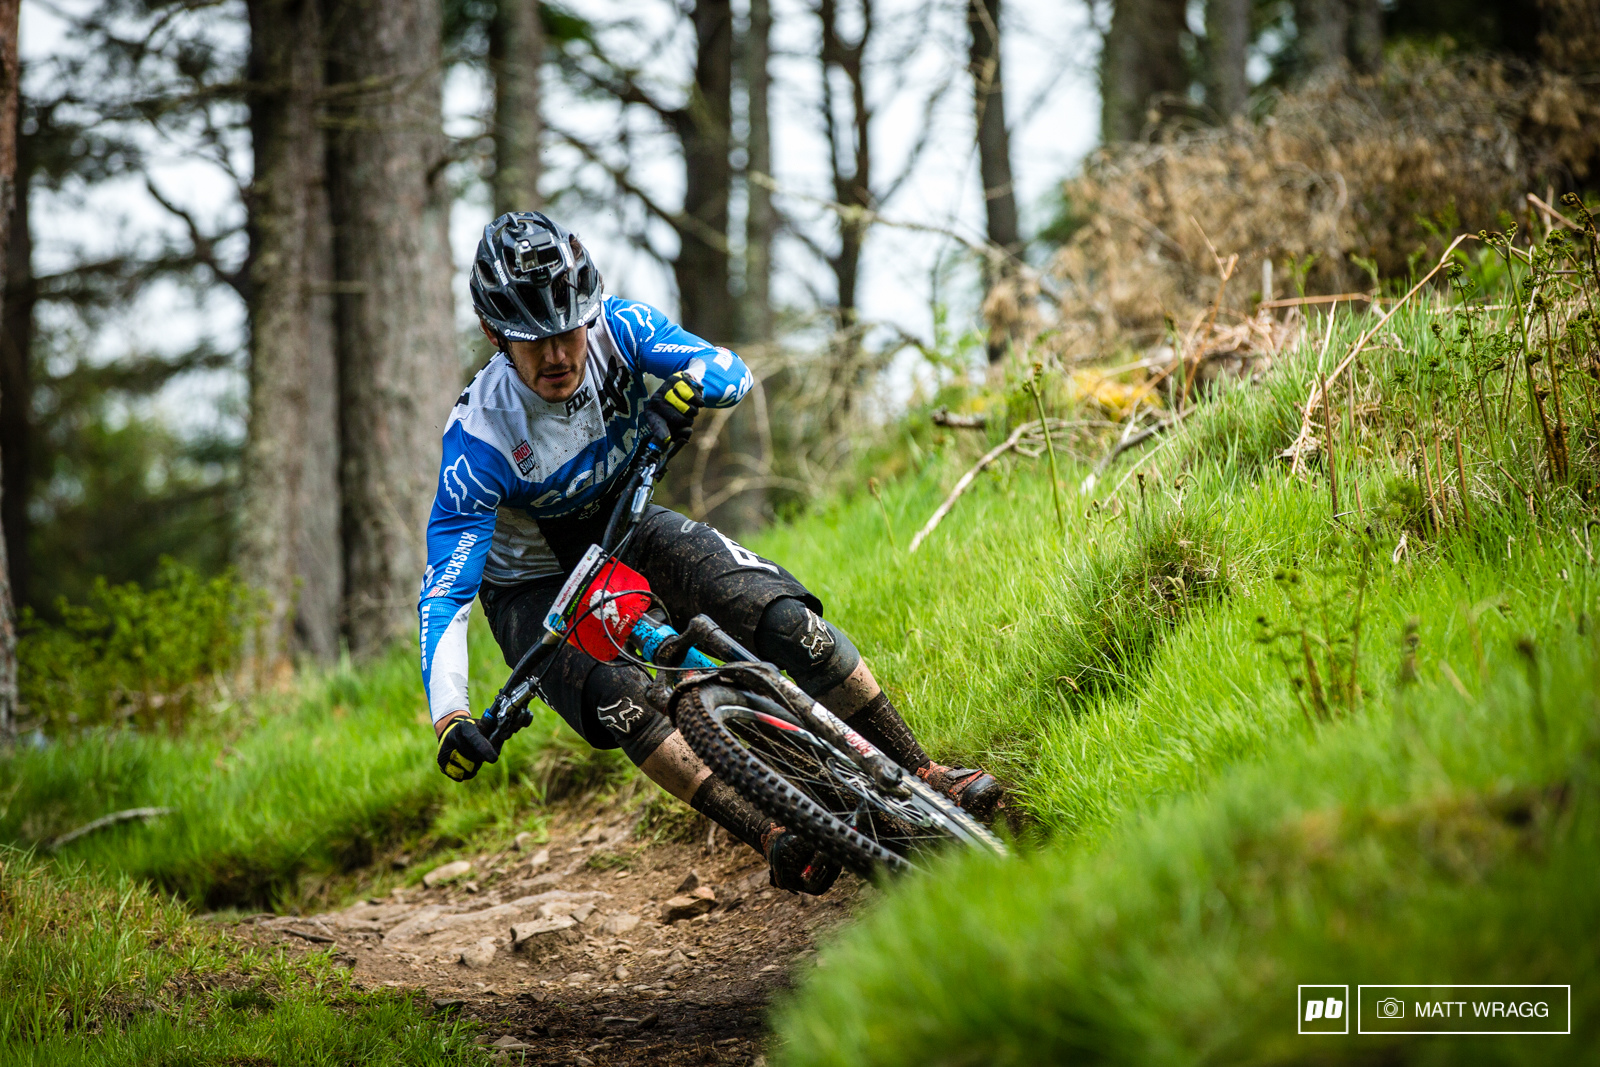 Yoann Barelli has been in Whistler all learning to ride in the rain - he has the chance to see if it paid off this weekened.